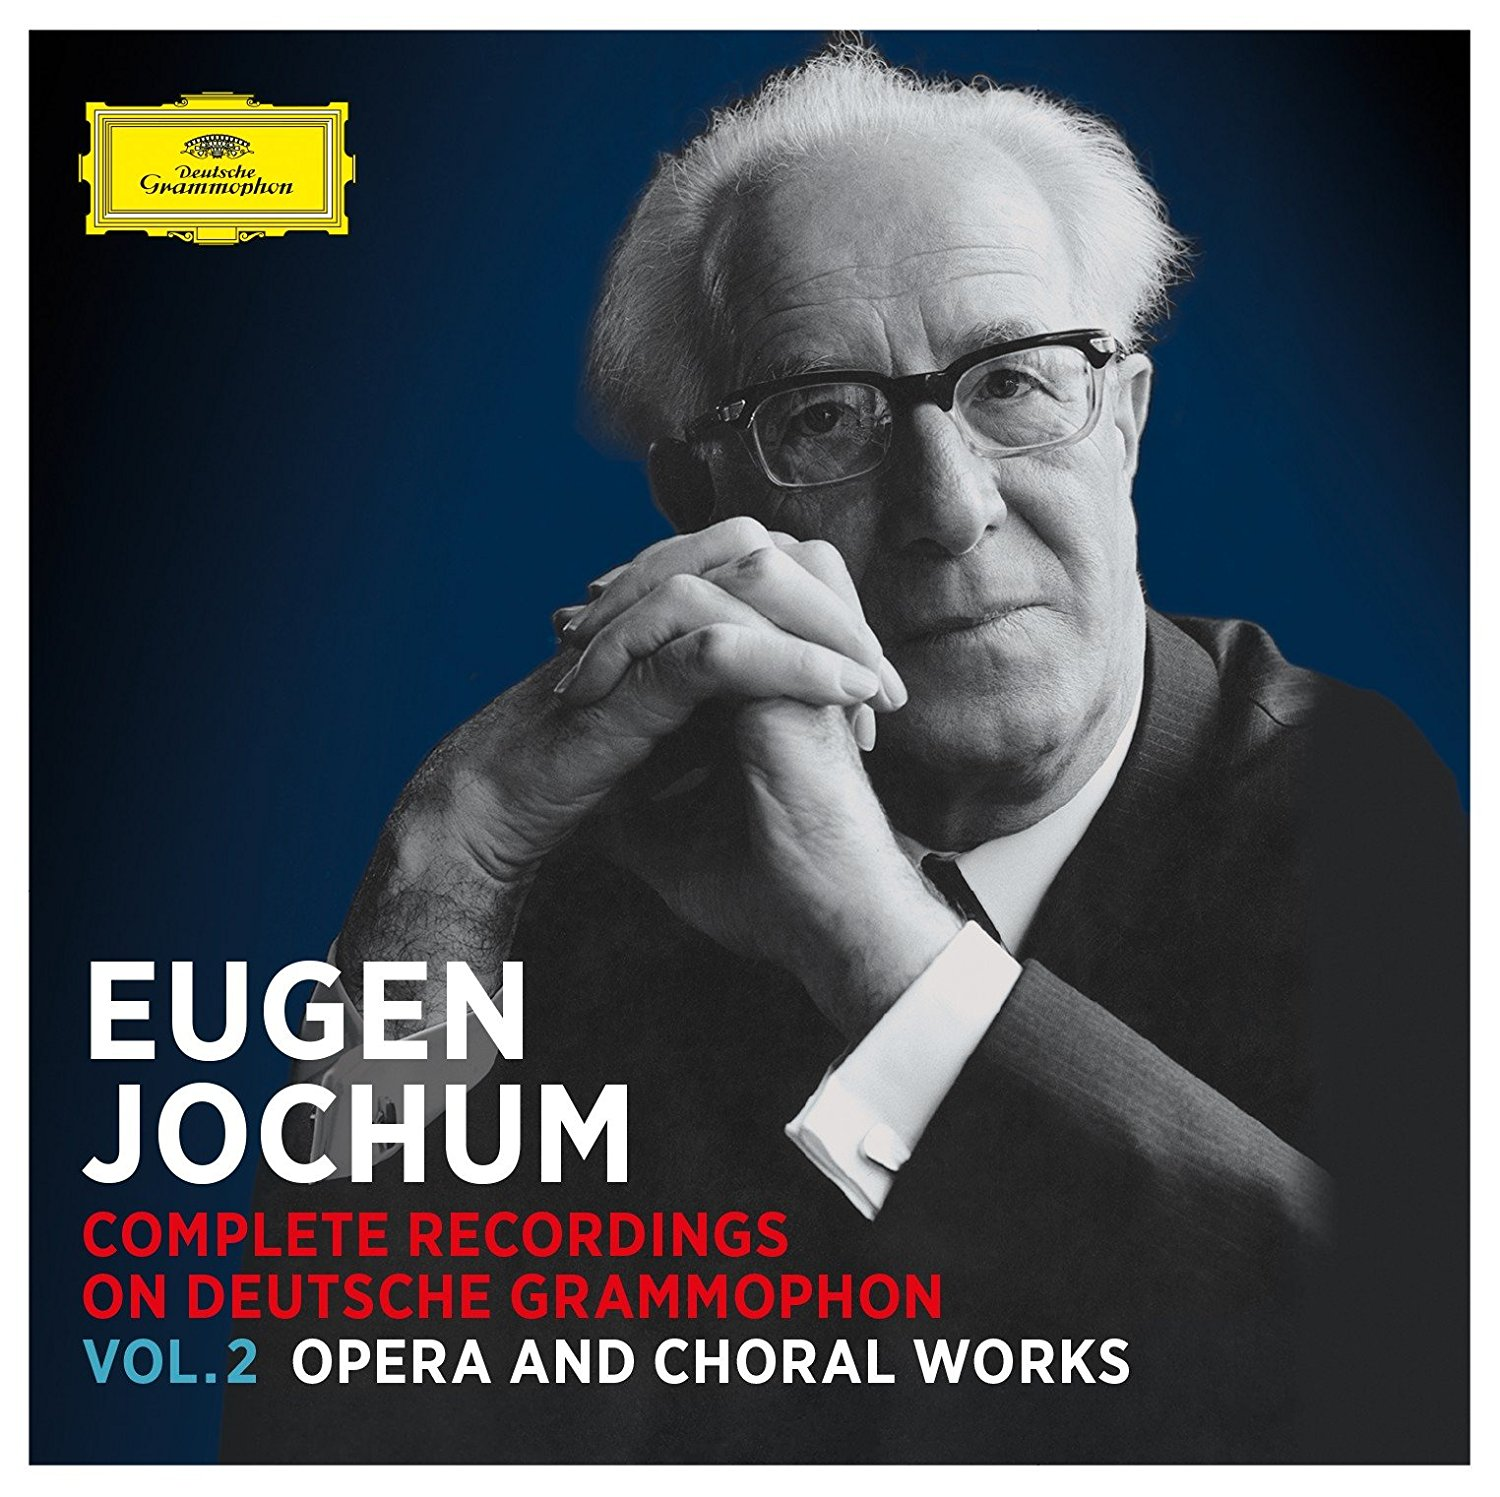 Eugen Jochum - Complete Recordings Vol.2